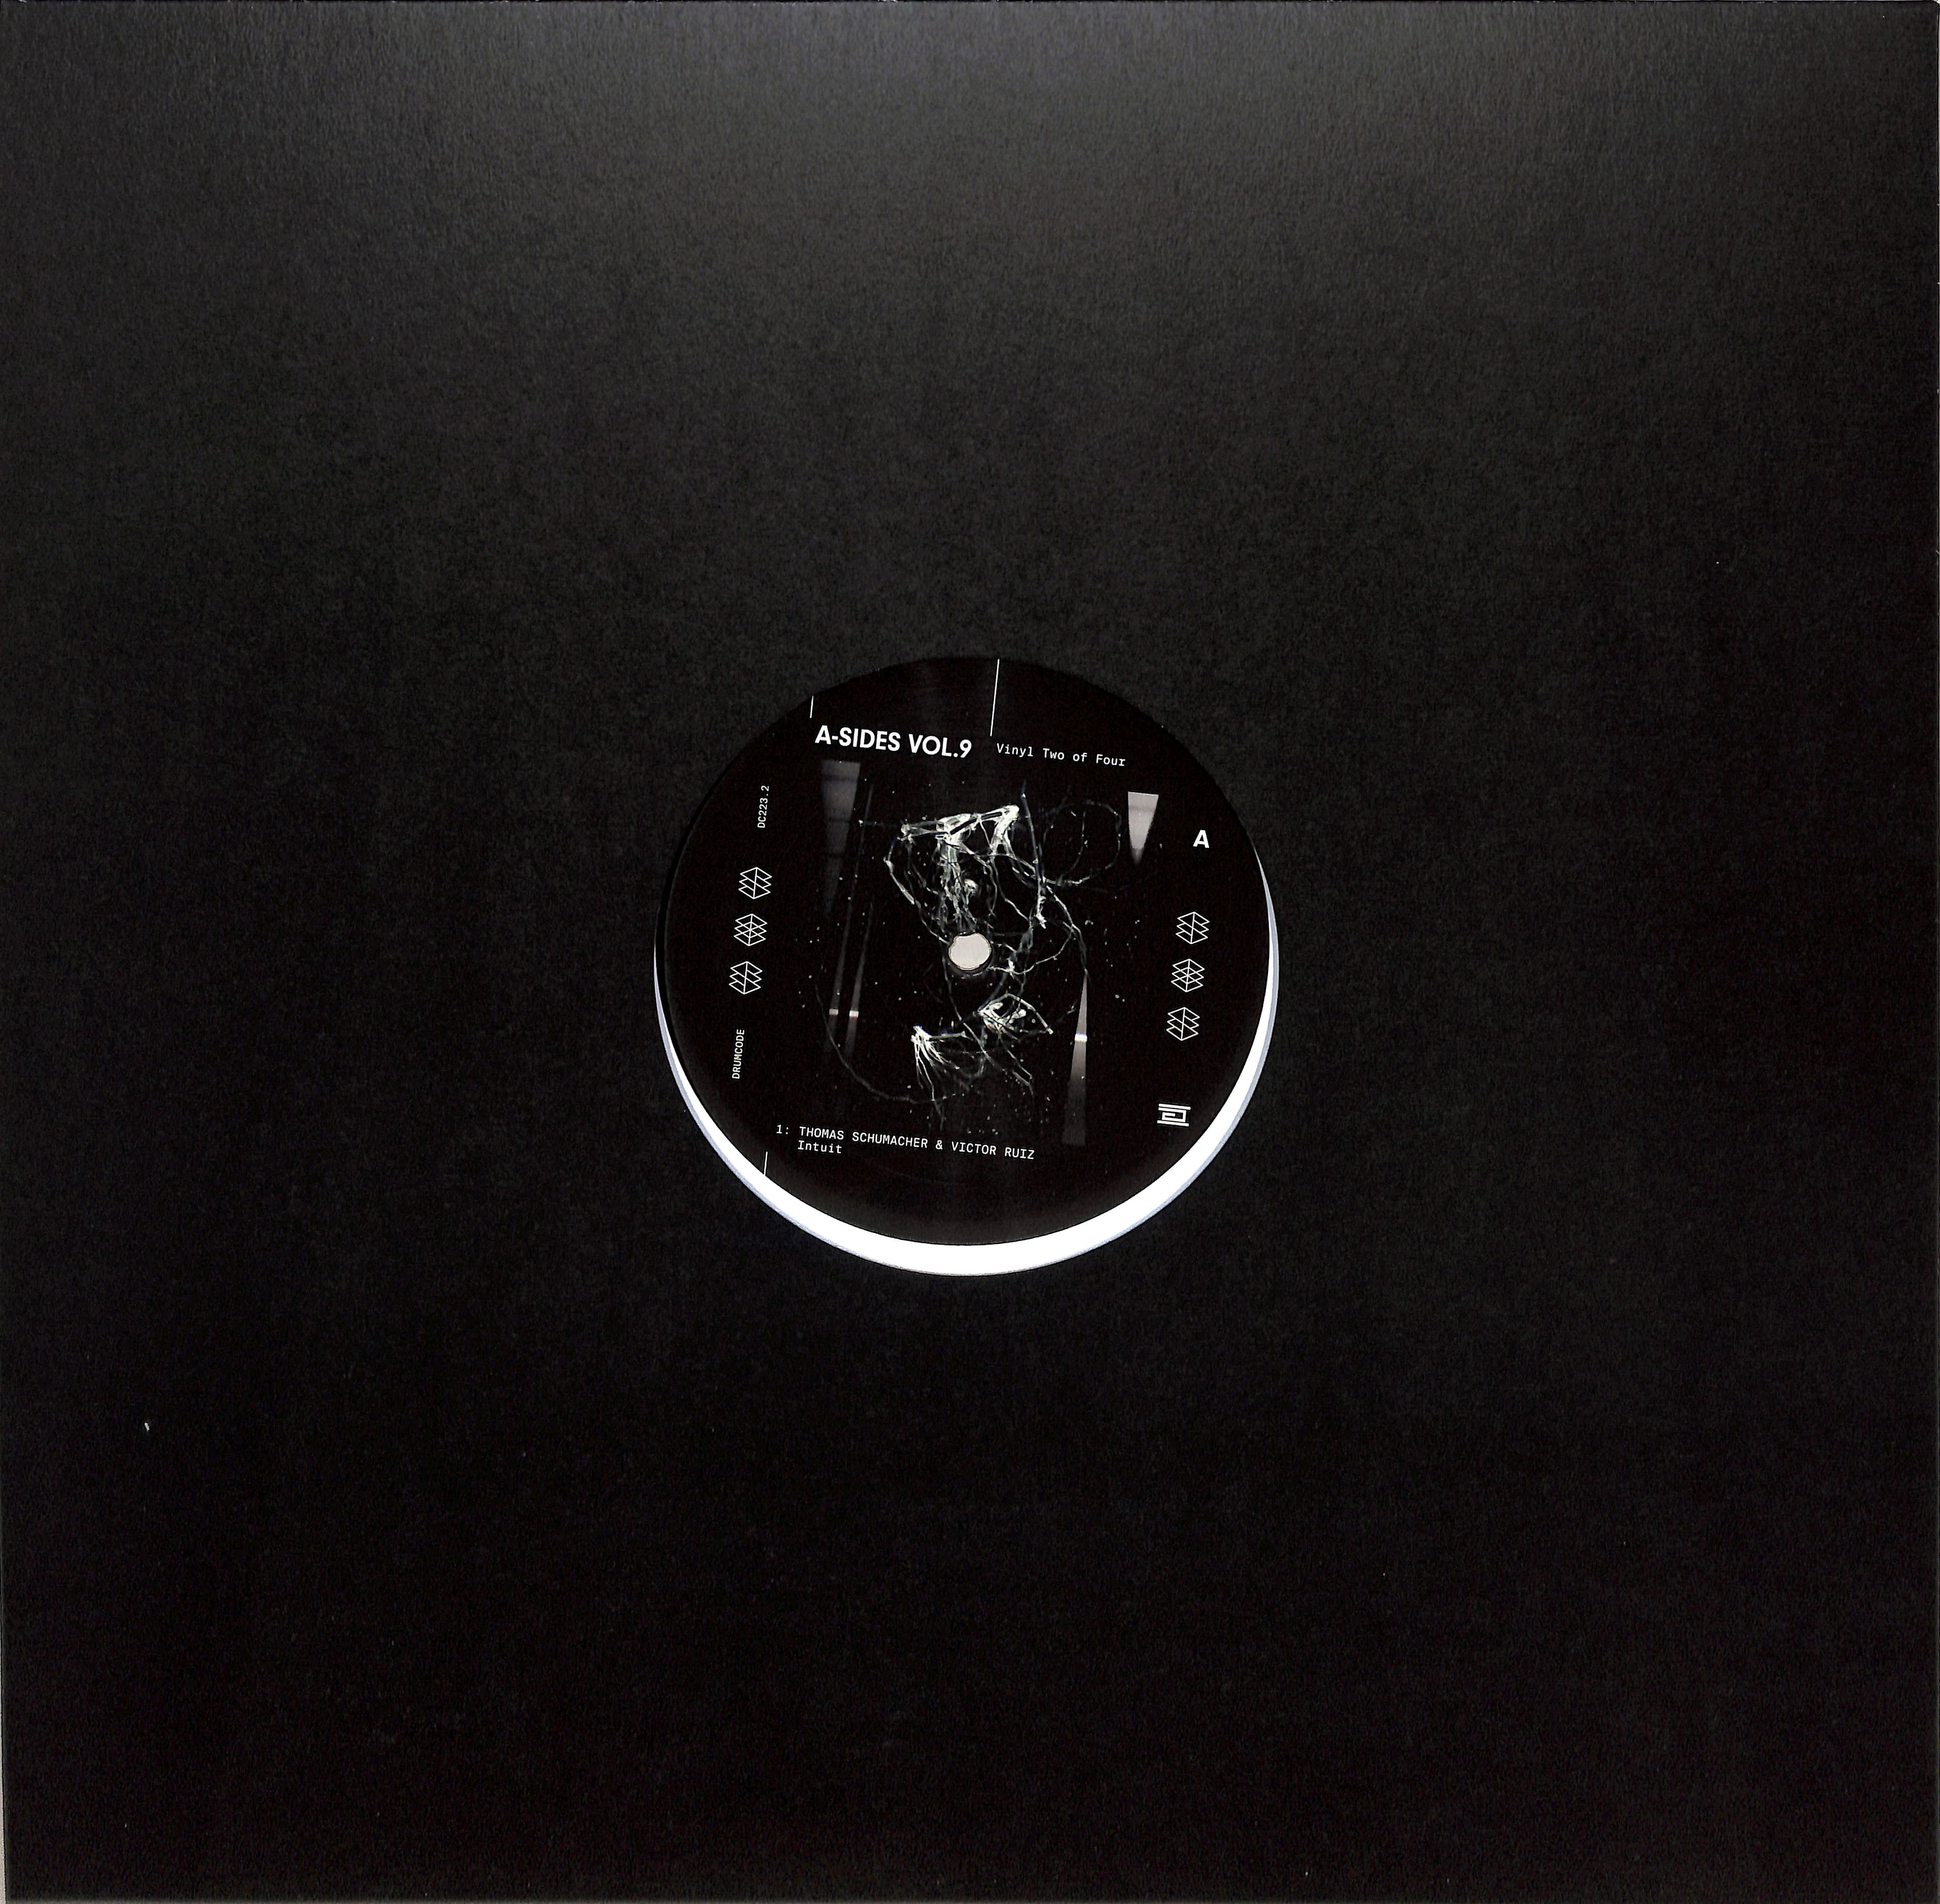 Various Artists - A-SIDES VOL.9 VINYL TWO OF FOUR